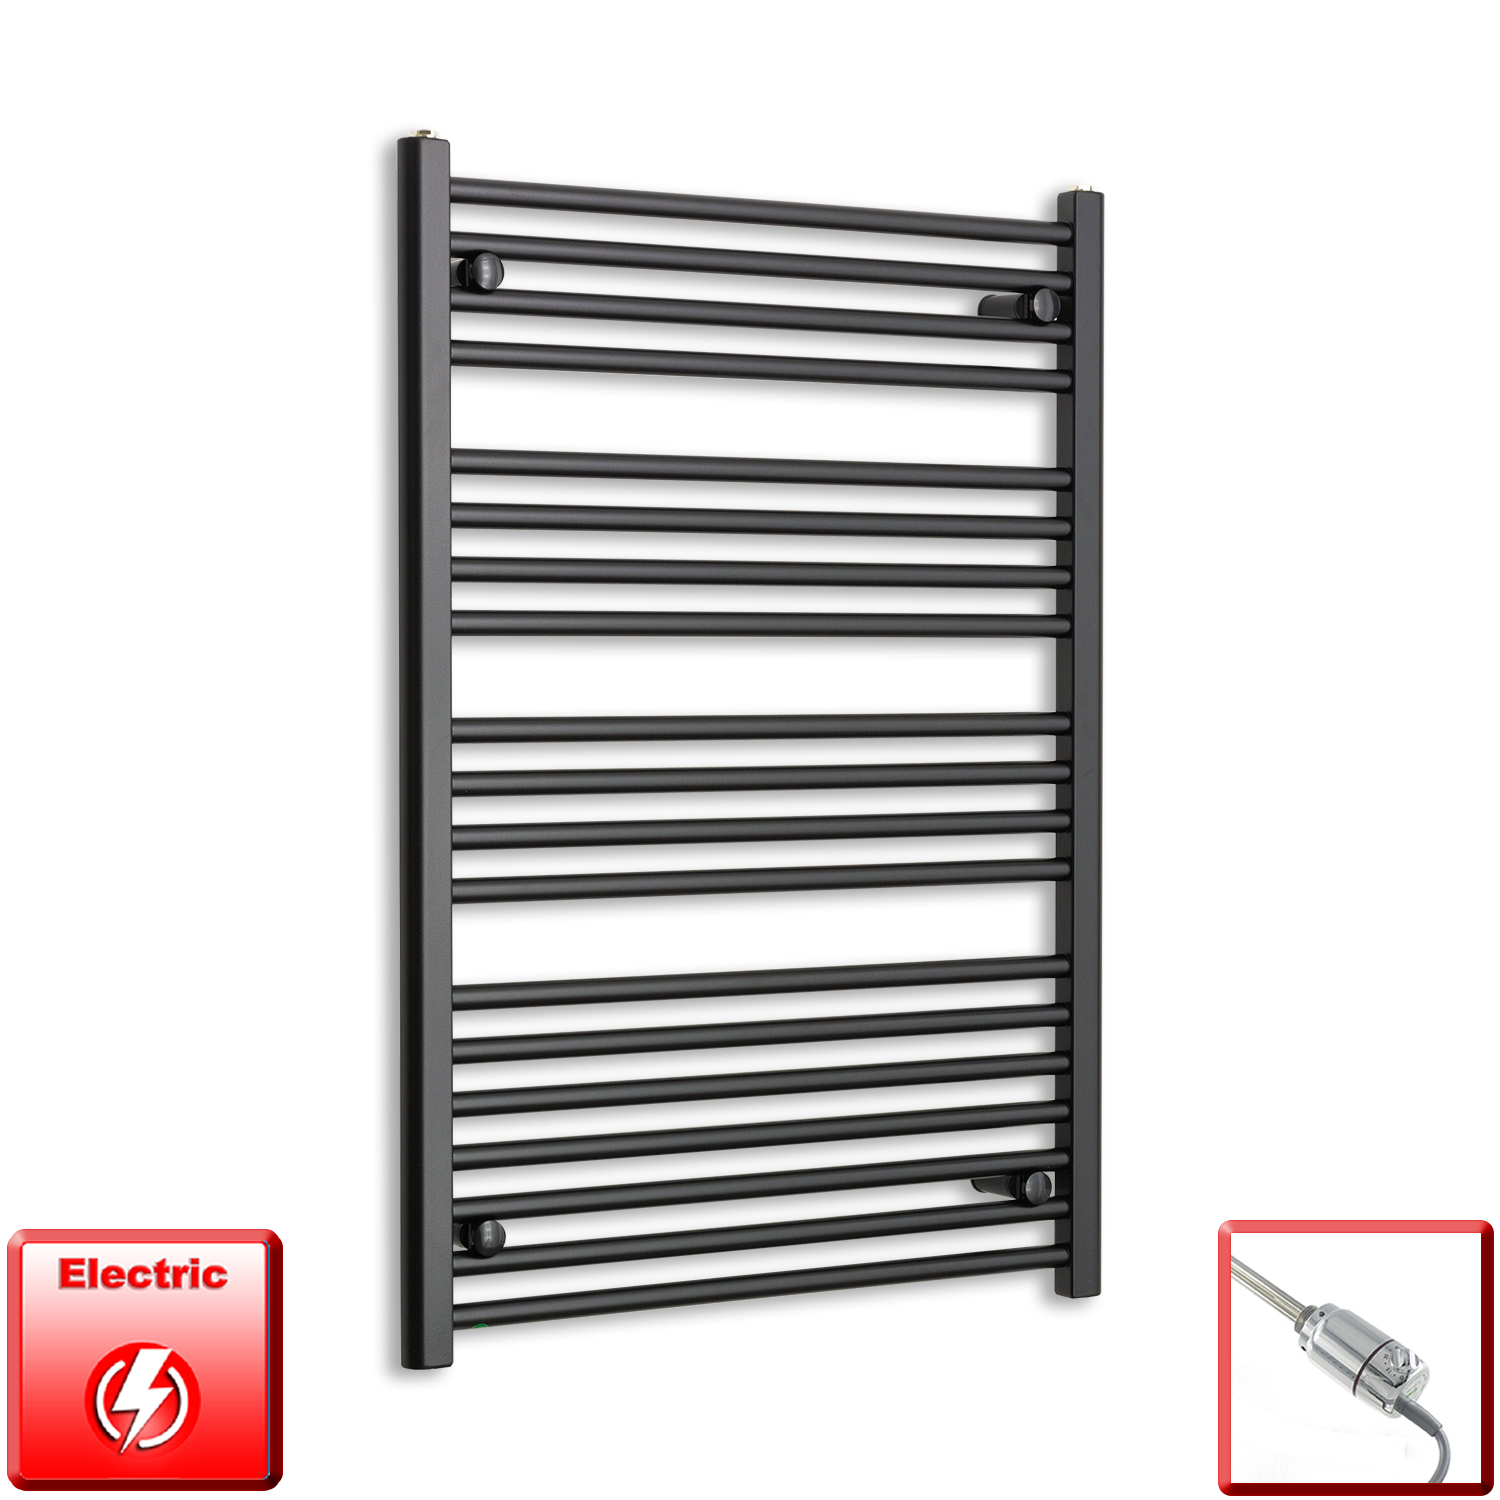 700mm Wide 1000mm High Pre-Filled Black Electric Towel Rail Radiator With Thermostatic GT Element